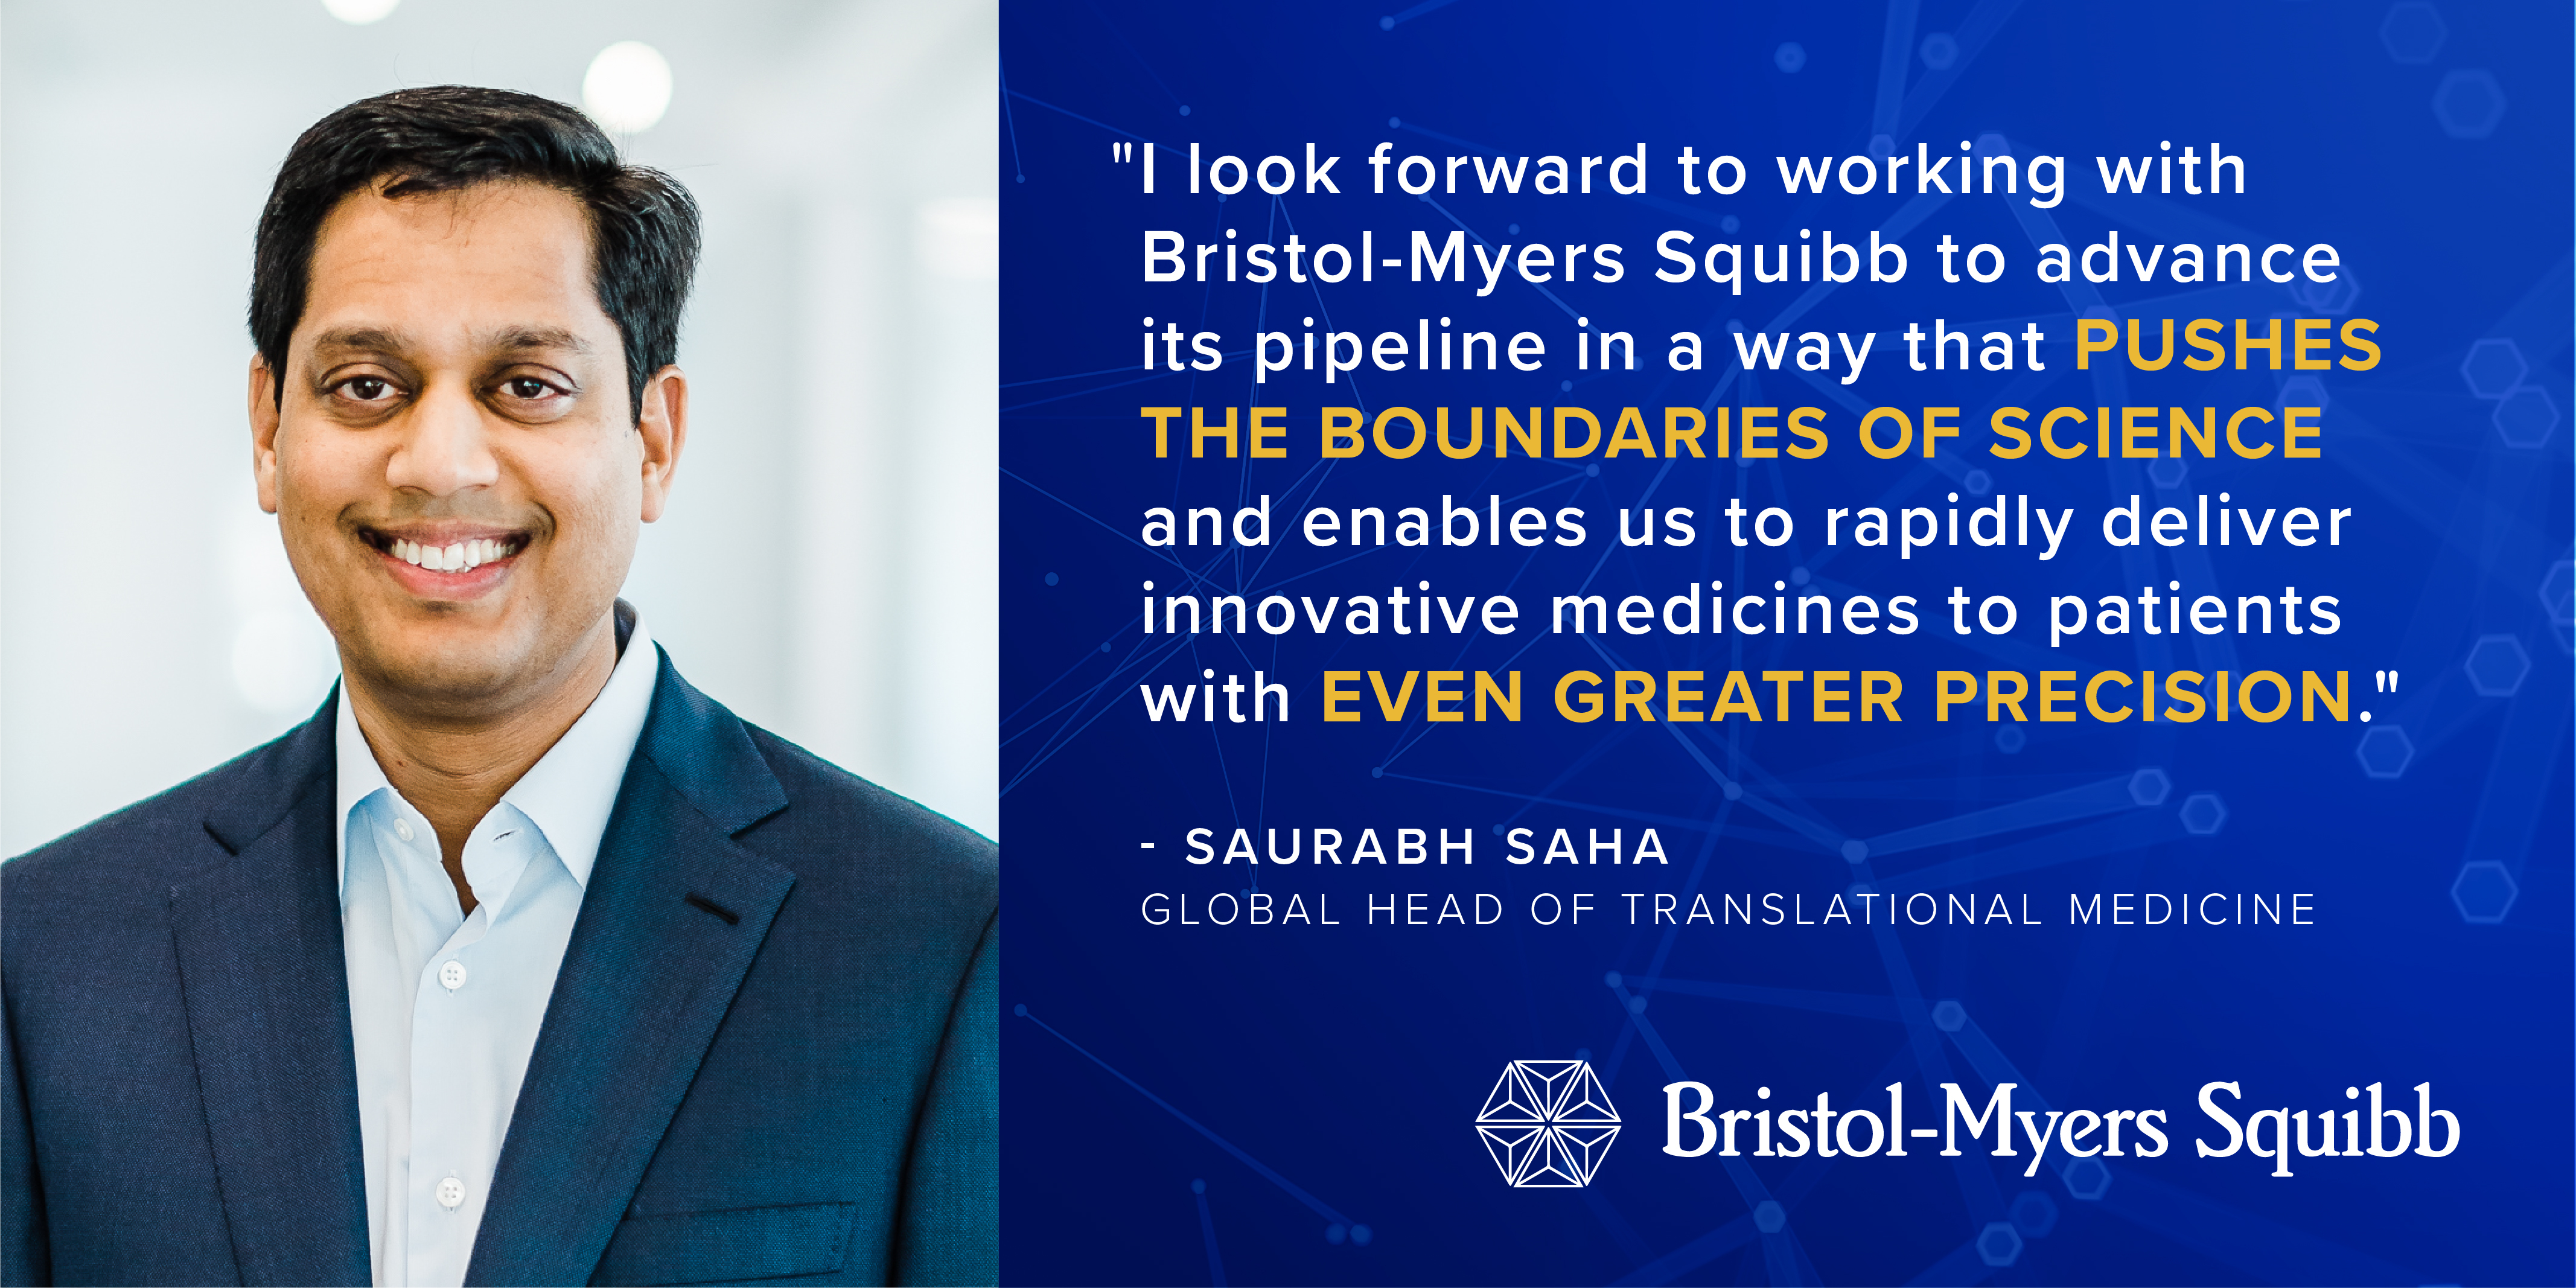 Xin Huang - Senior Research Scientist - Bristol-Myers Squibb